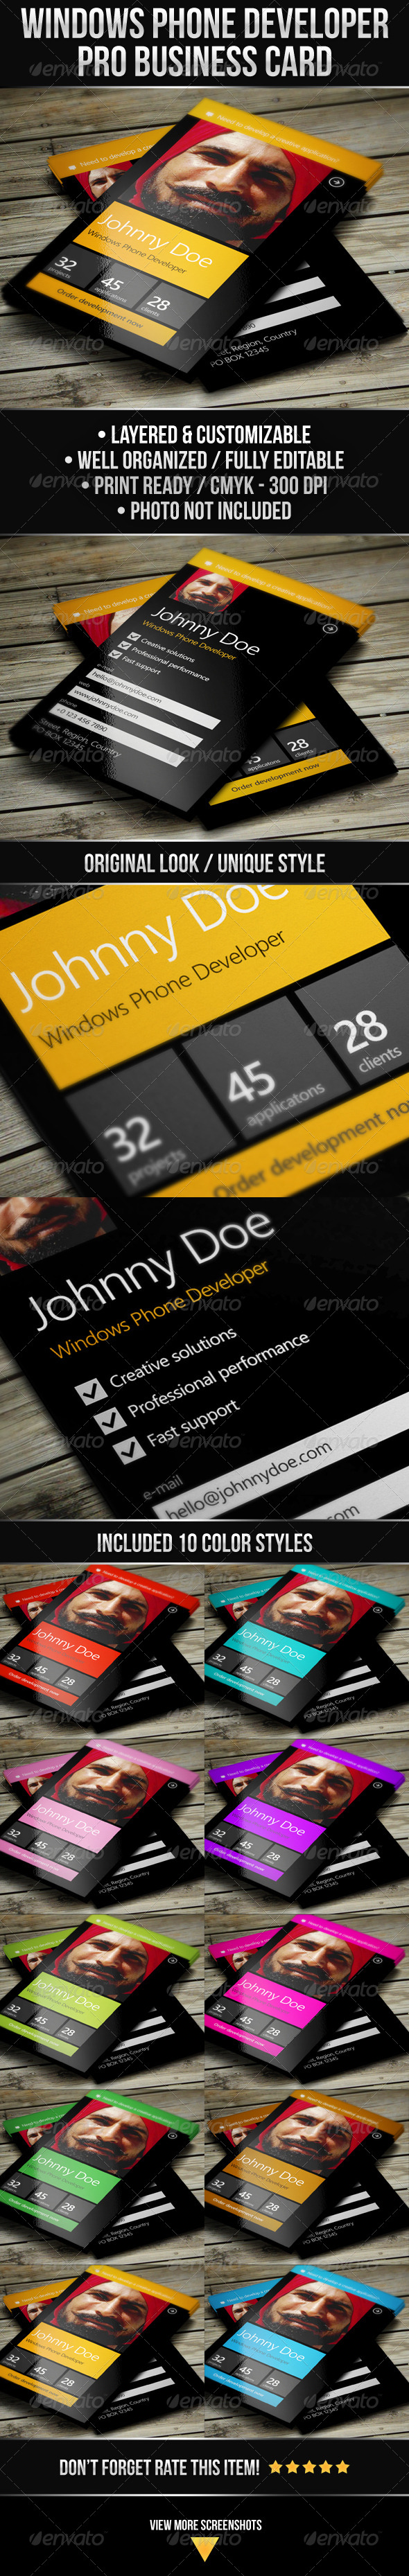 GraphicRiver Windows Phone Developer Business Card 4630859